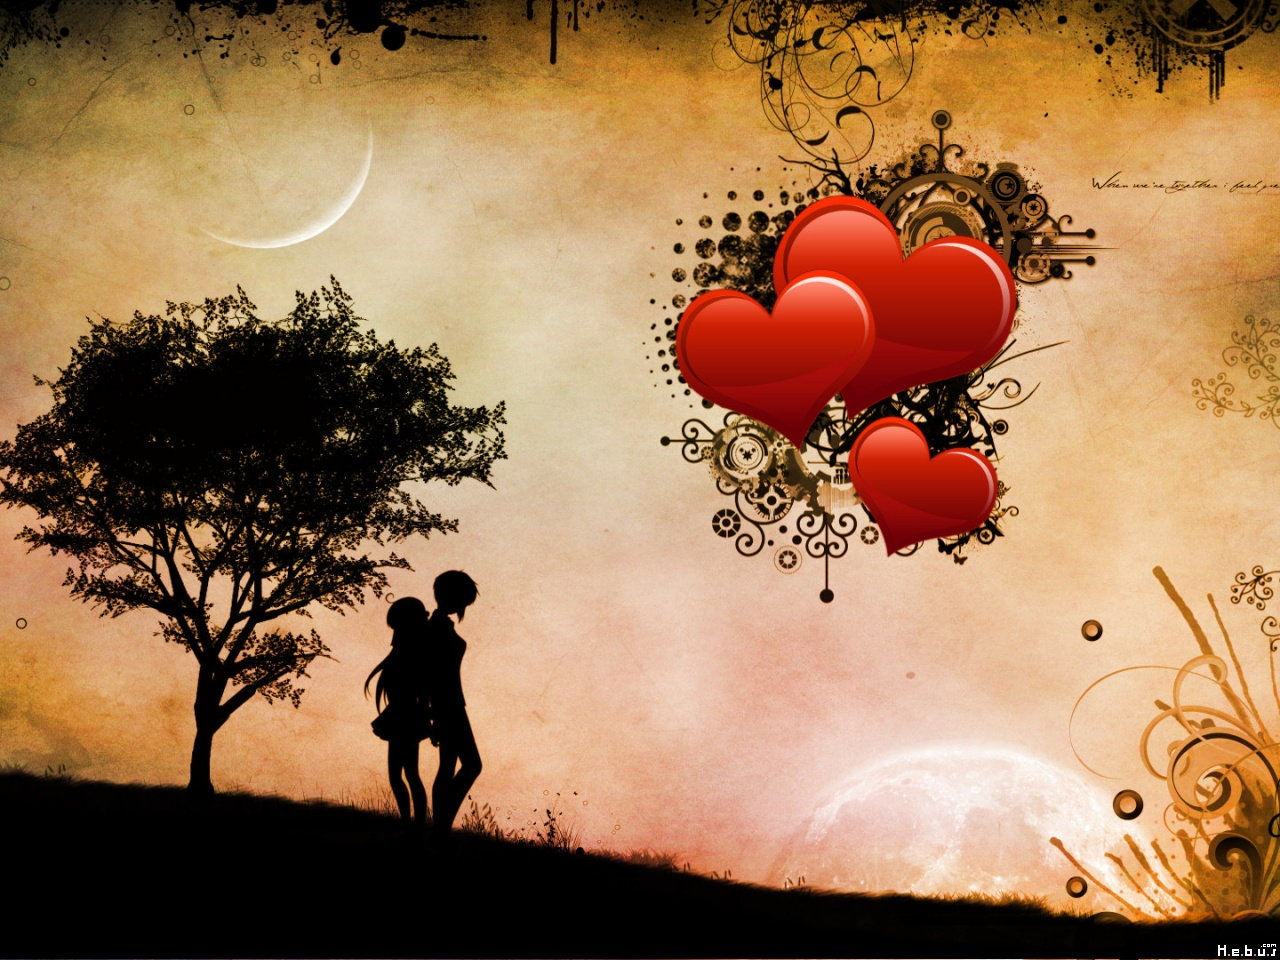 A Wallpapers Home: hd wallpapers of love